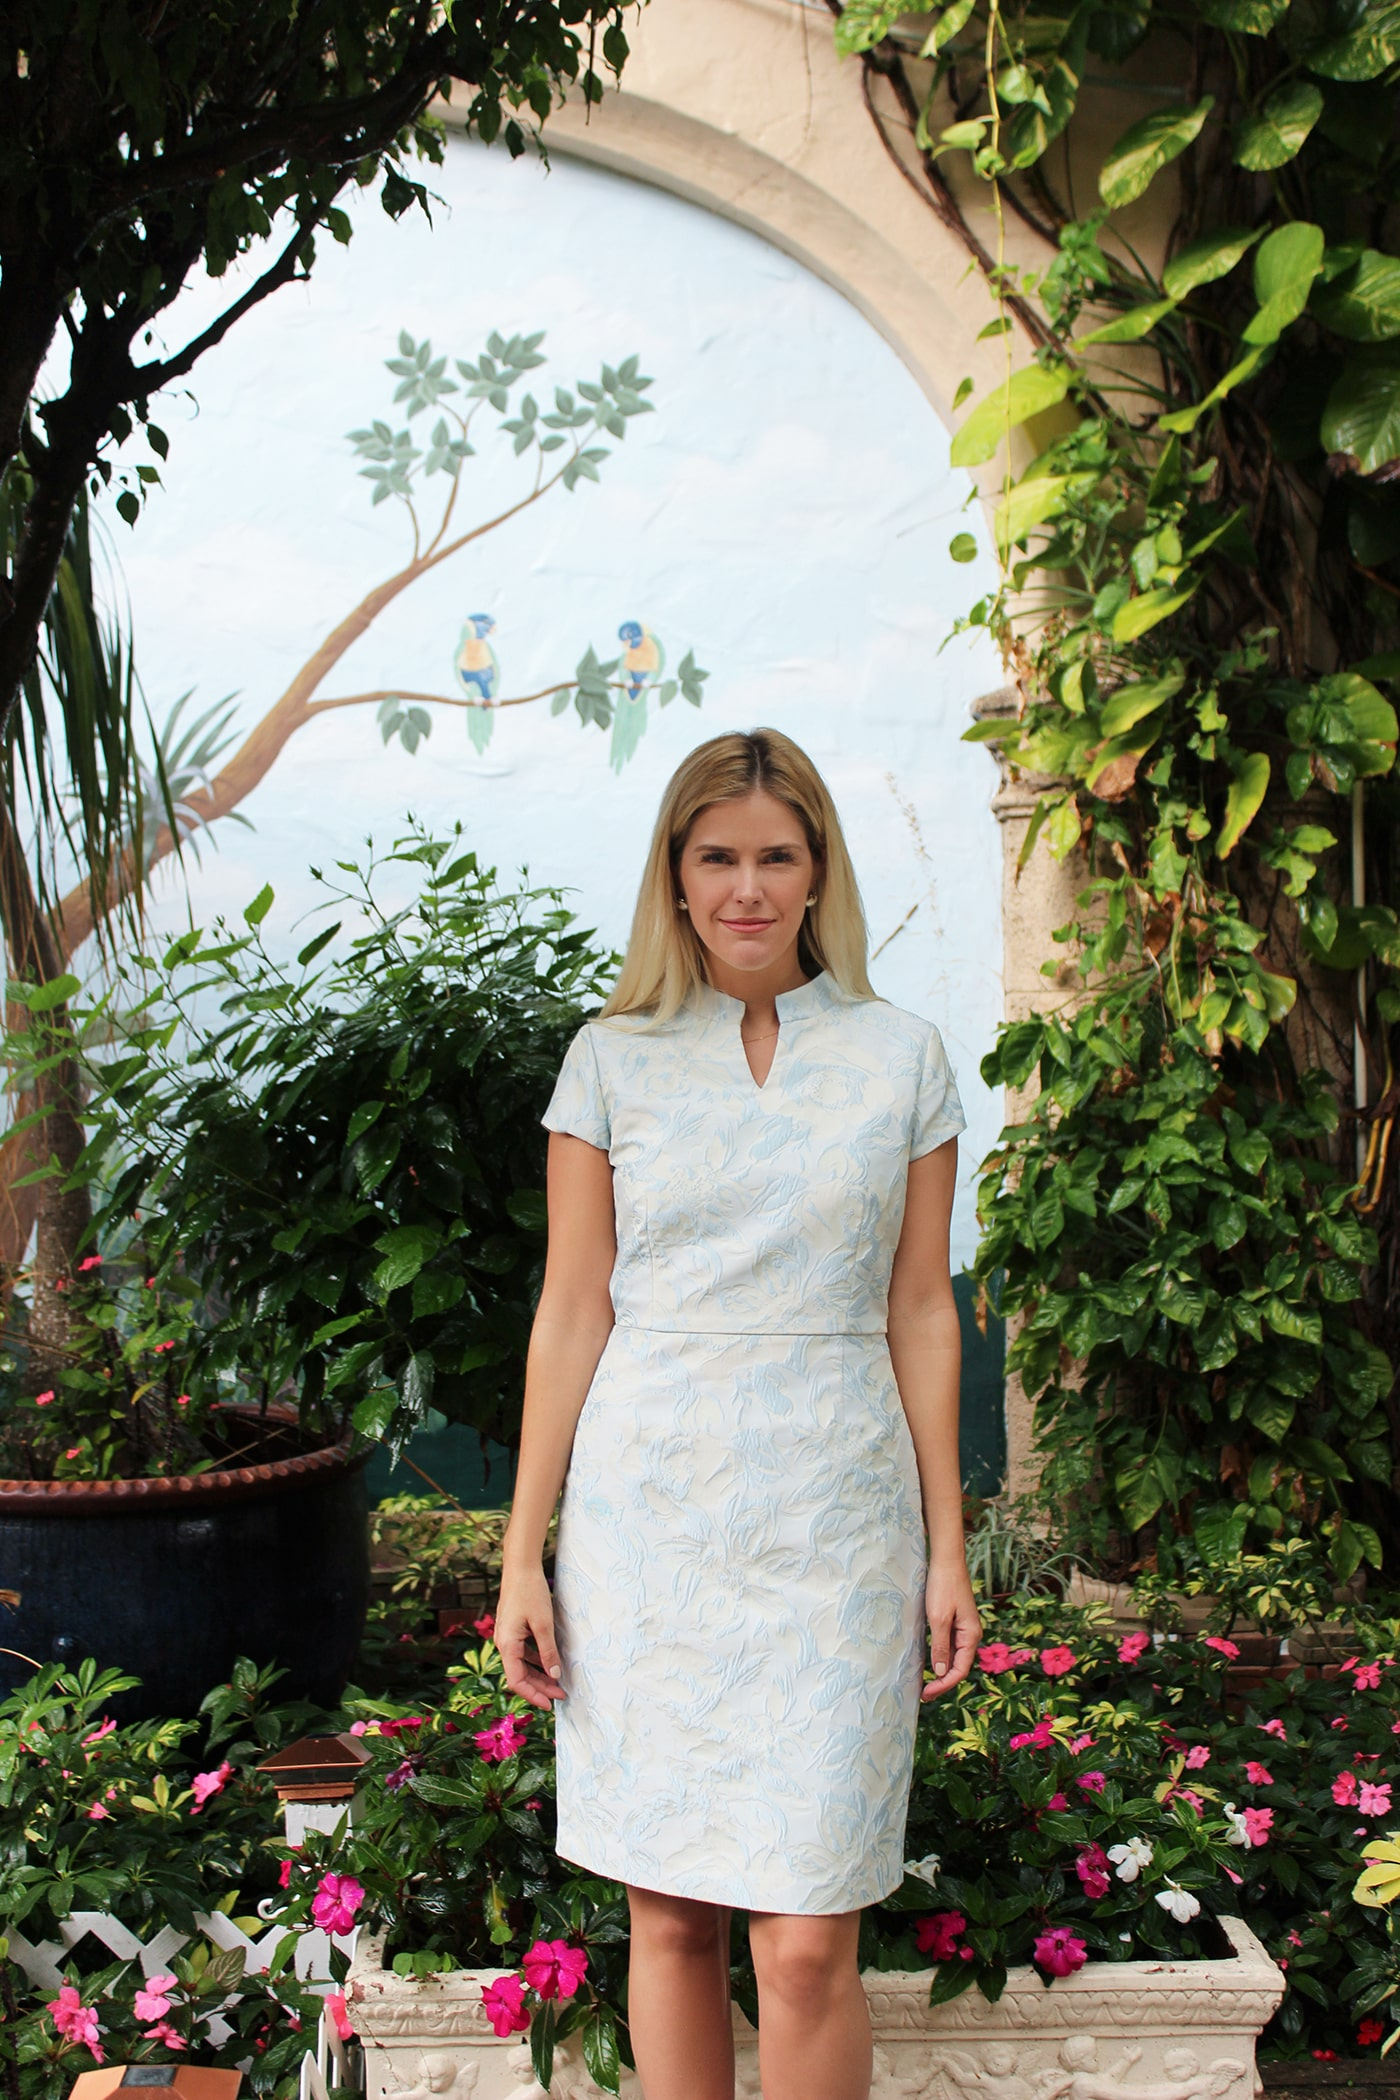 Subtle and understated, the Mona Dress is fabricated from Italian brocade that is powder-white with a baby blue floral design. With short sleeves and a petite v-neck.